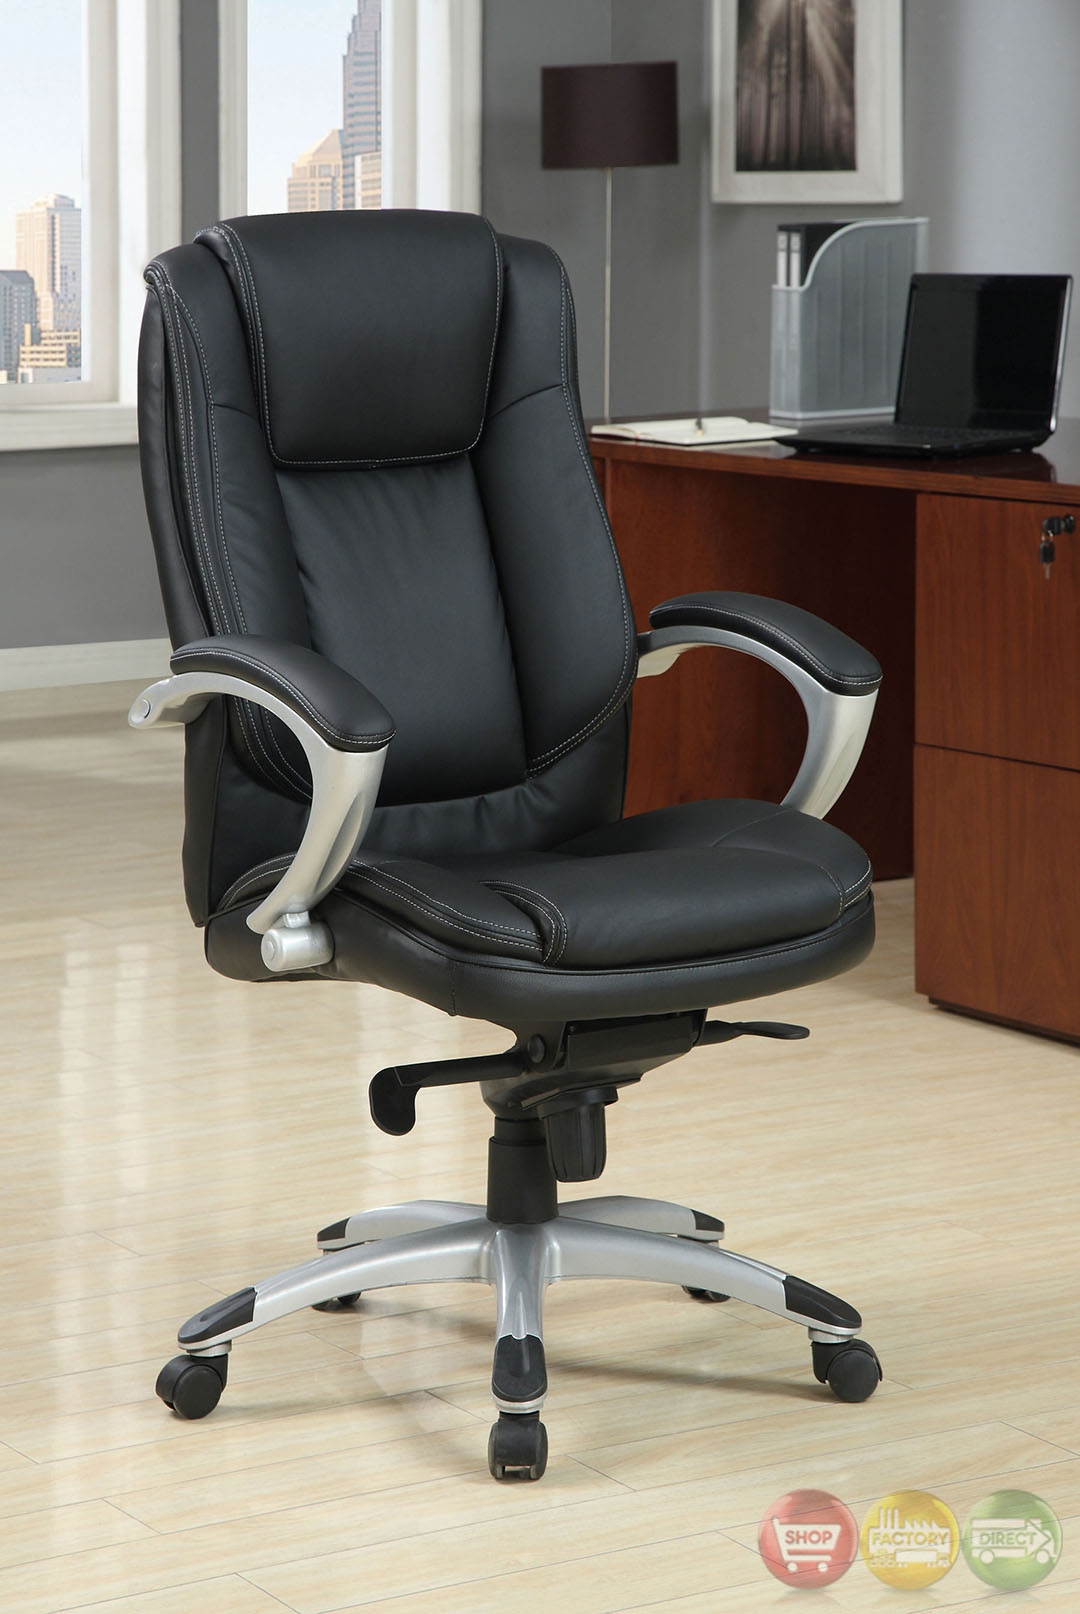 padded office chair hitachi magic wand hillsborough black and silver with